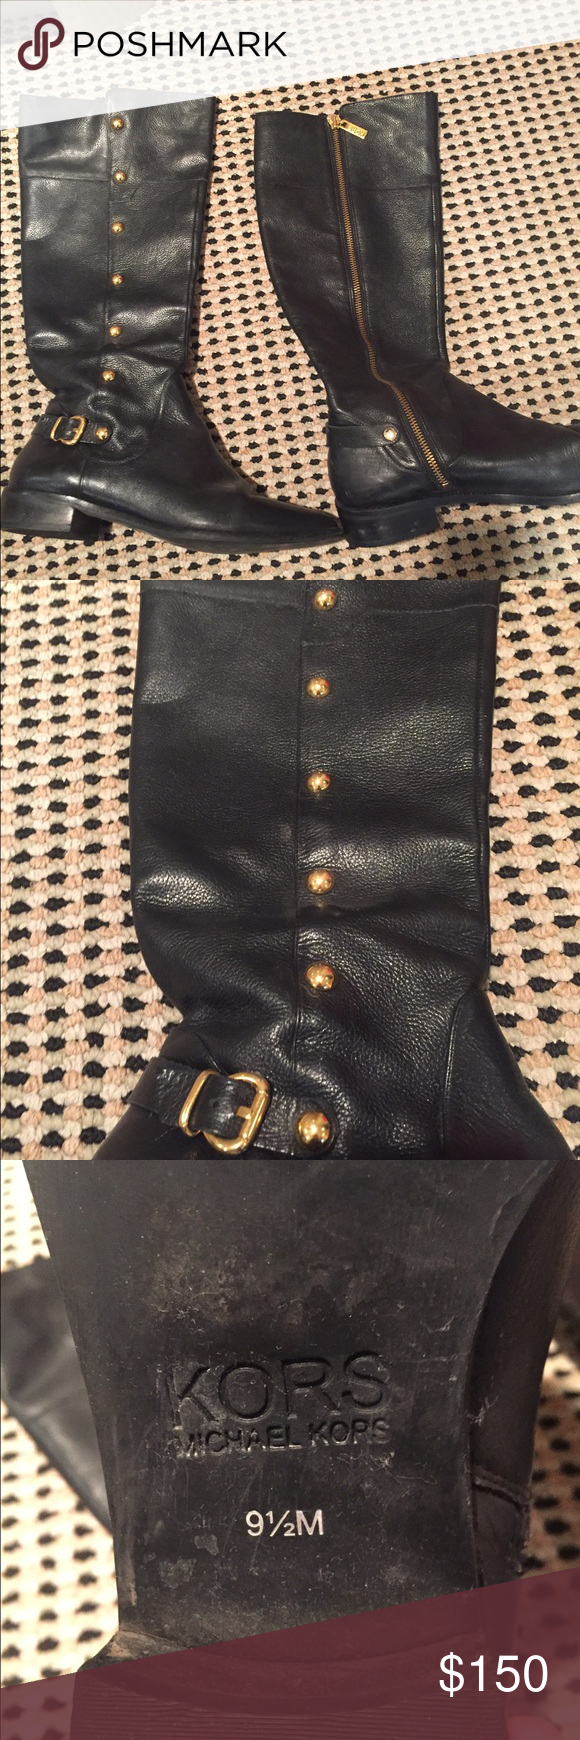 Kors Michael Kors black leather boots 100% authentic black leather boots with amazing gold hardware. In great condition KORS Michael Kors Shoes